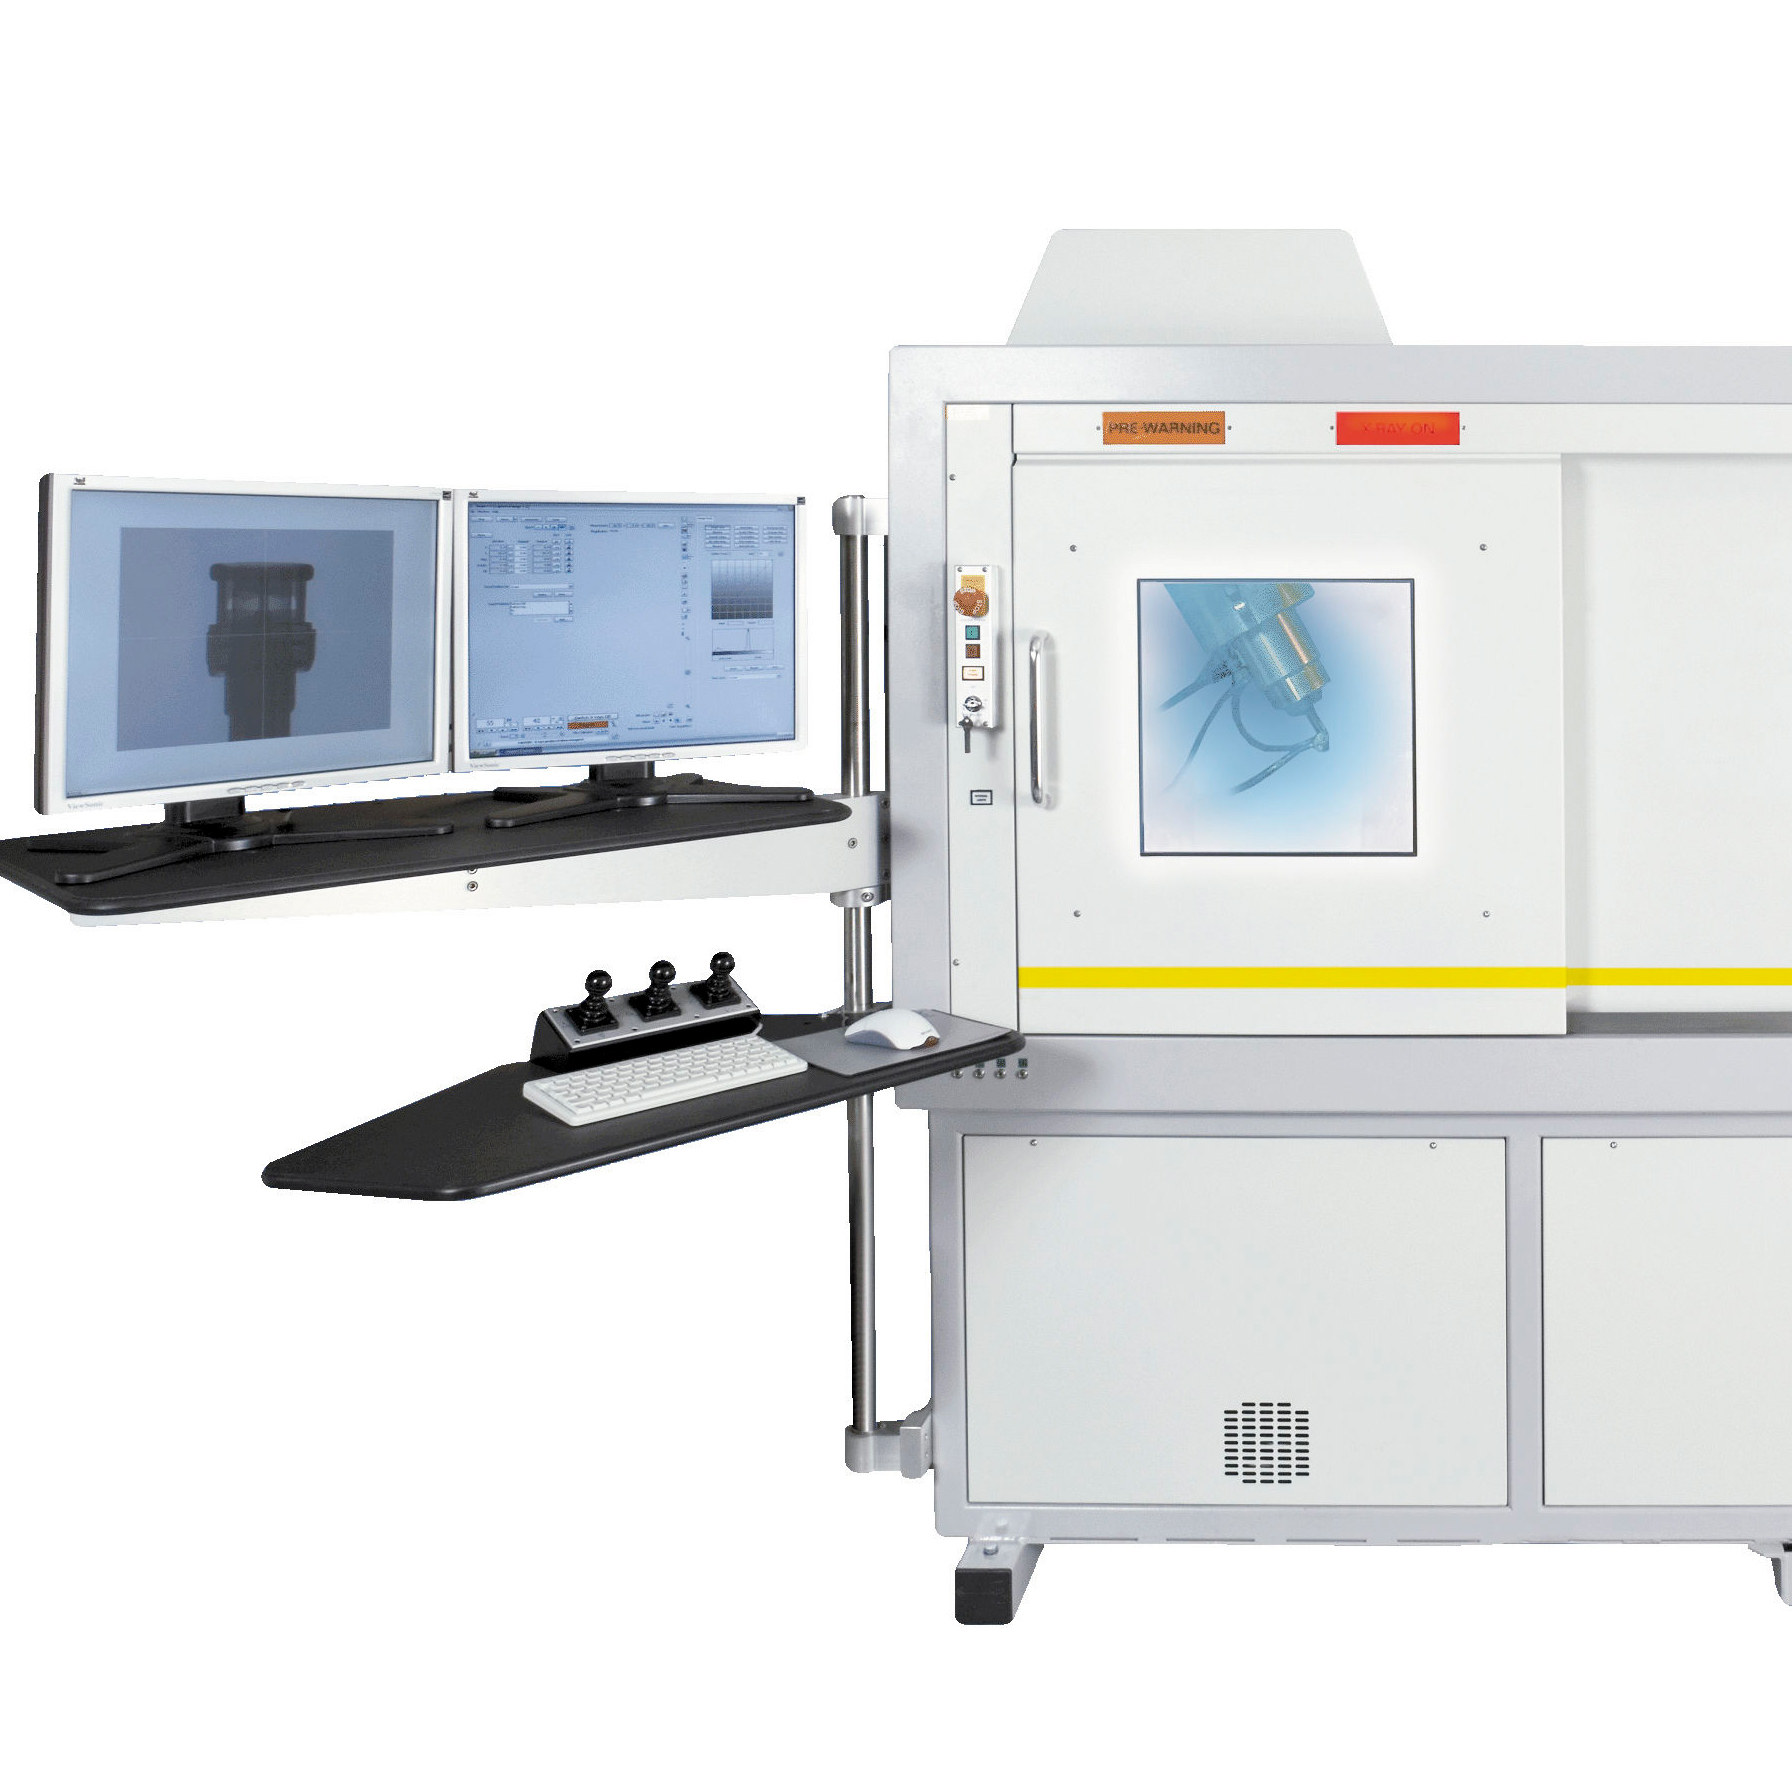 Upcoming Arrival of Micro-CT